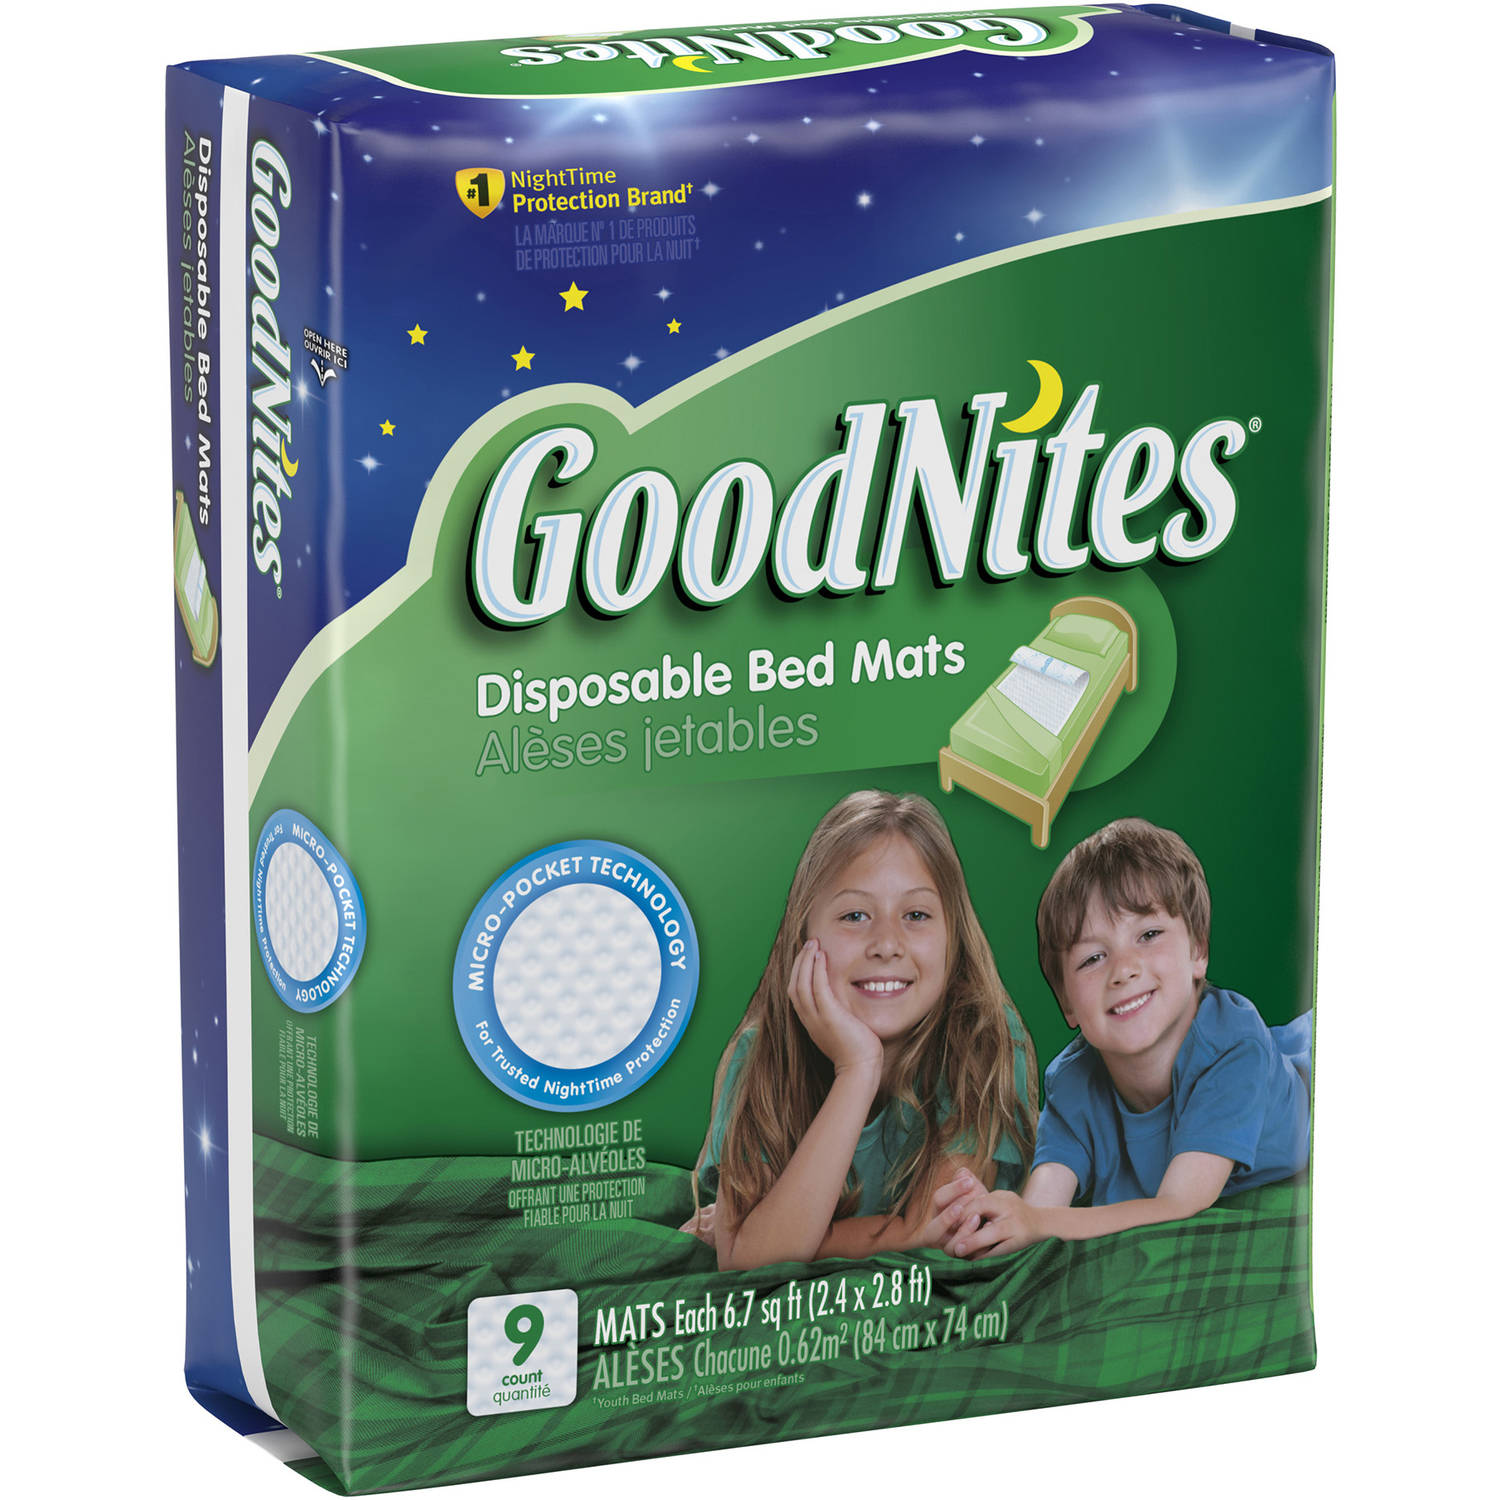 GoodNites Disposable Bed Mats, Jumbo Pack 9 Count